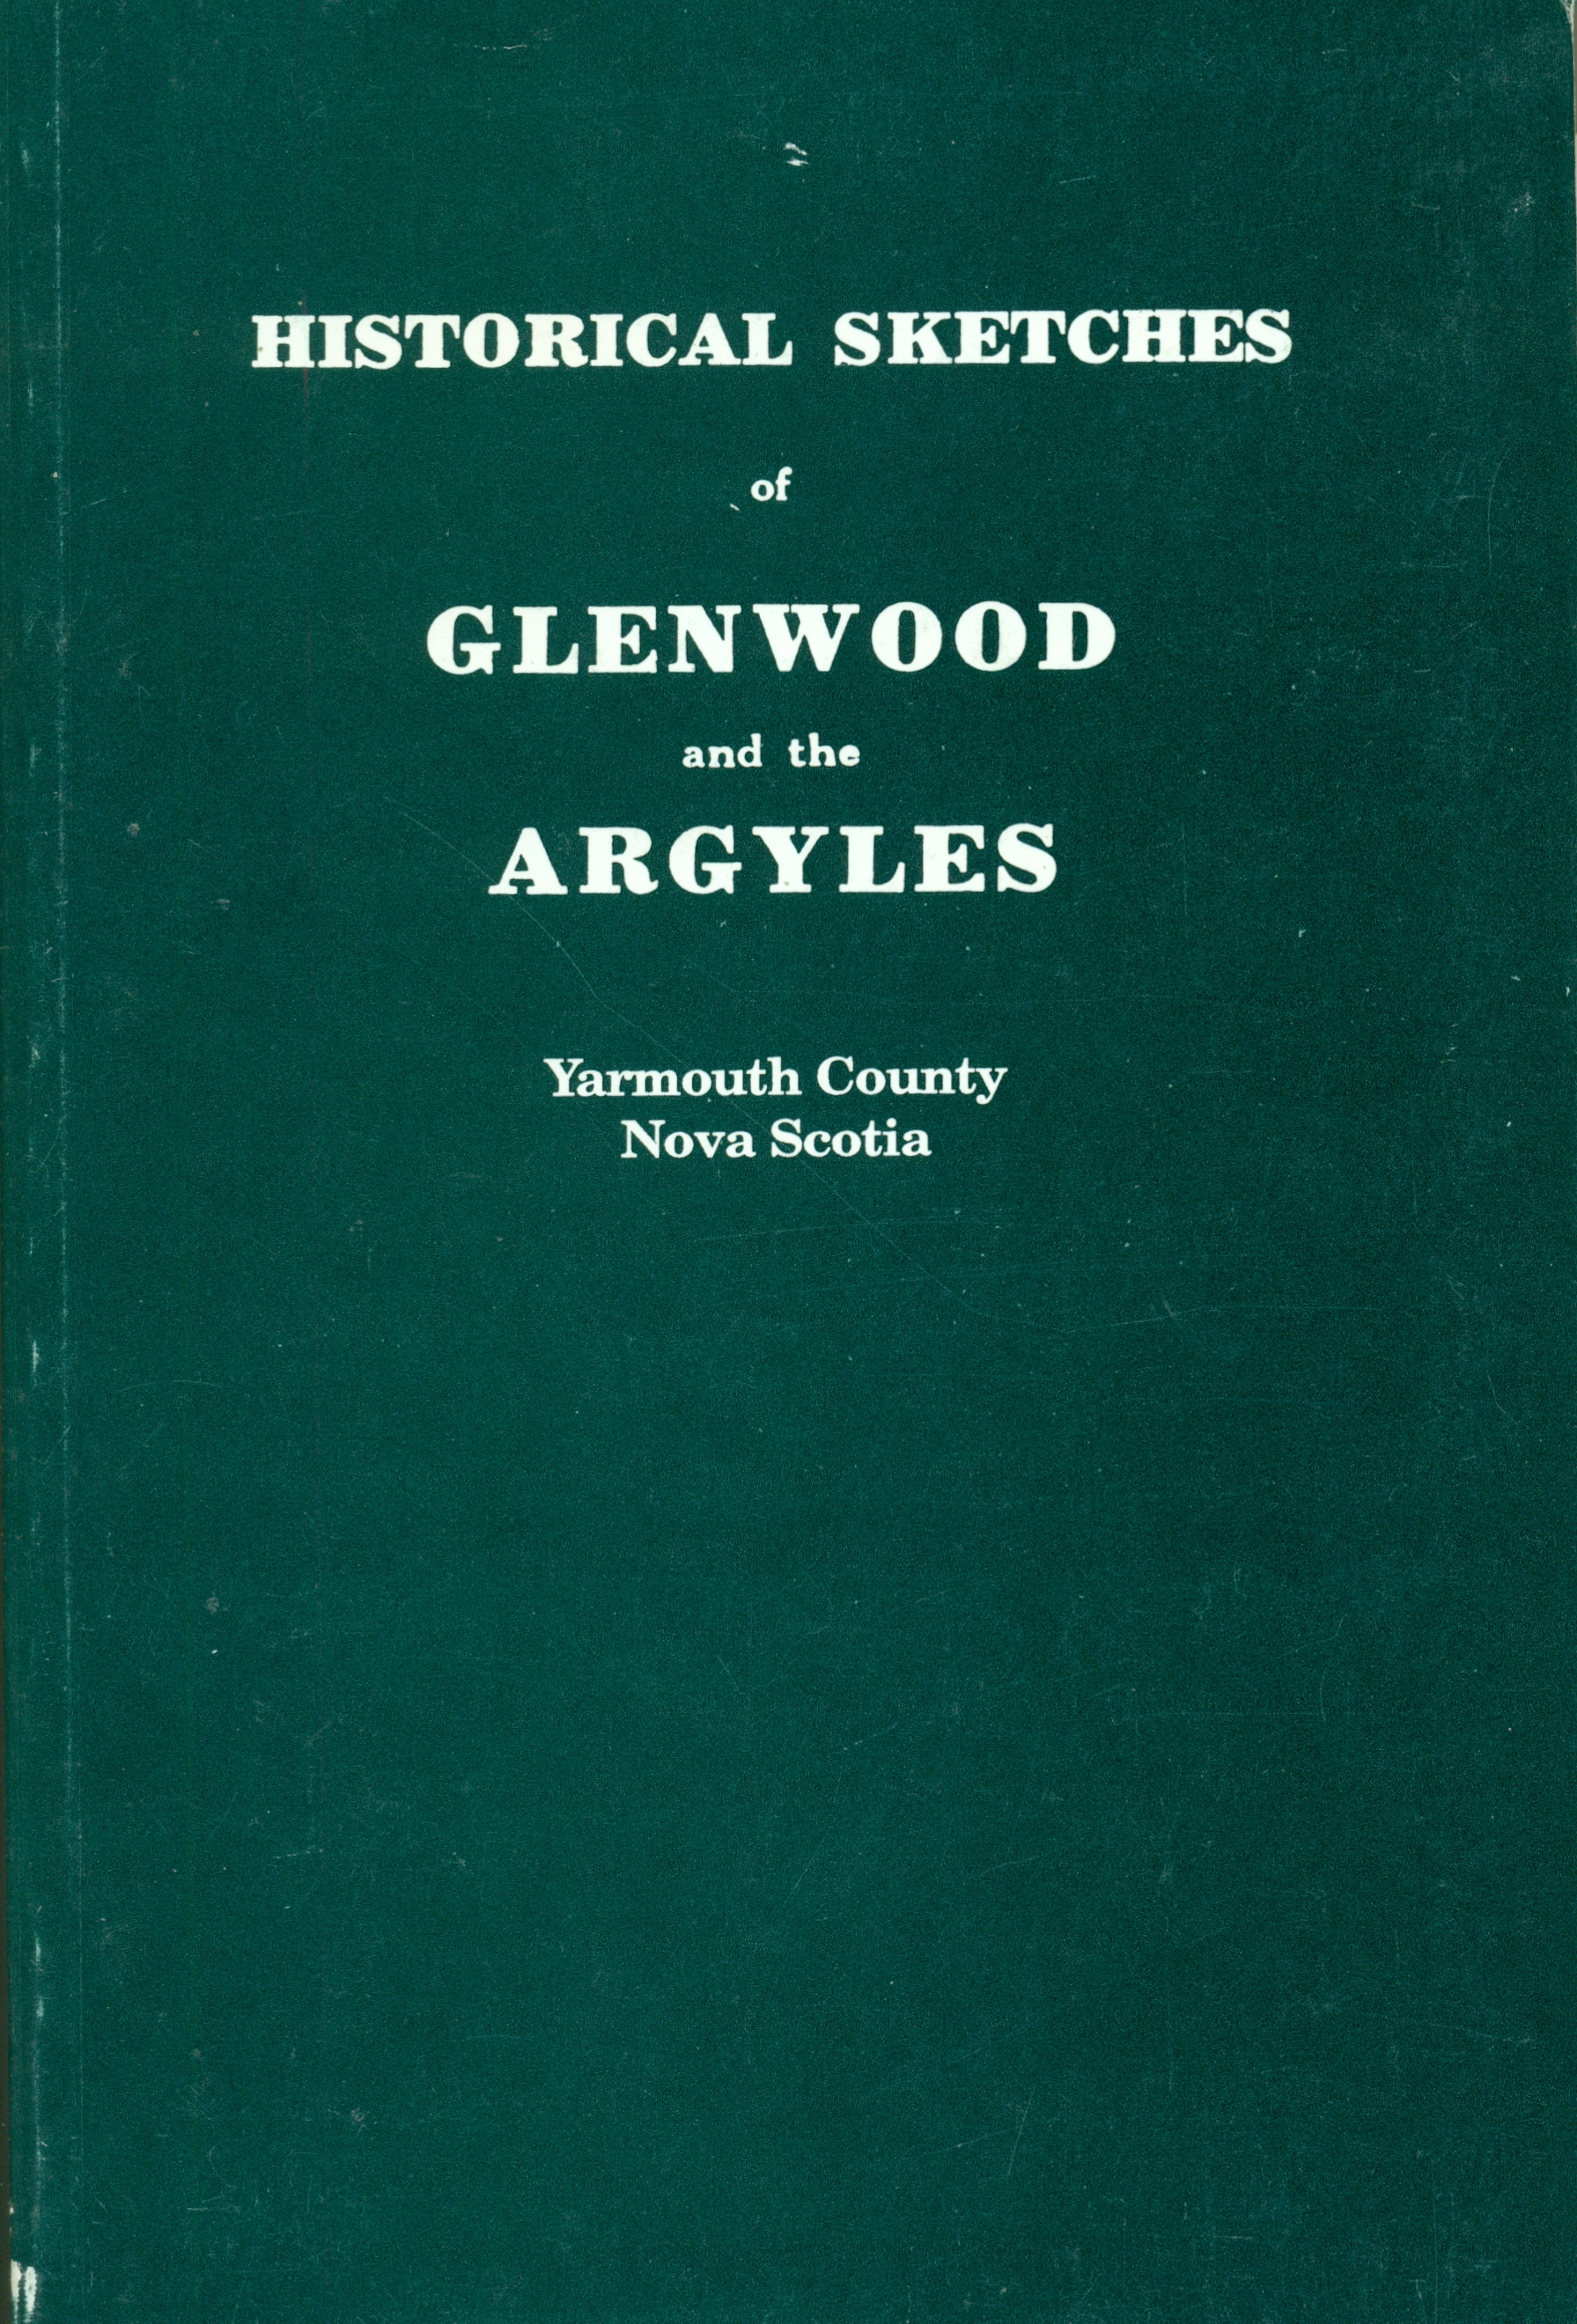 Historical Sketches of Glenwood and the Argyles